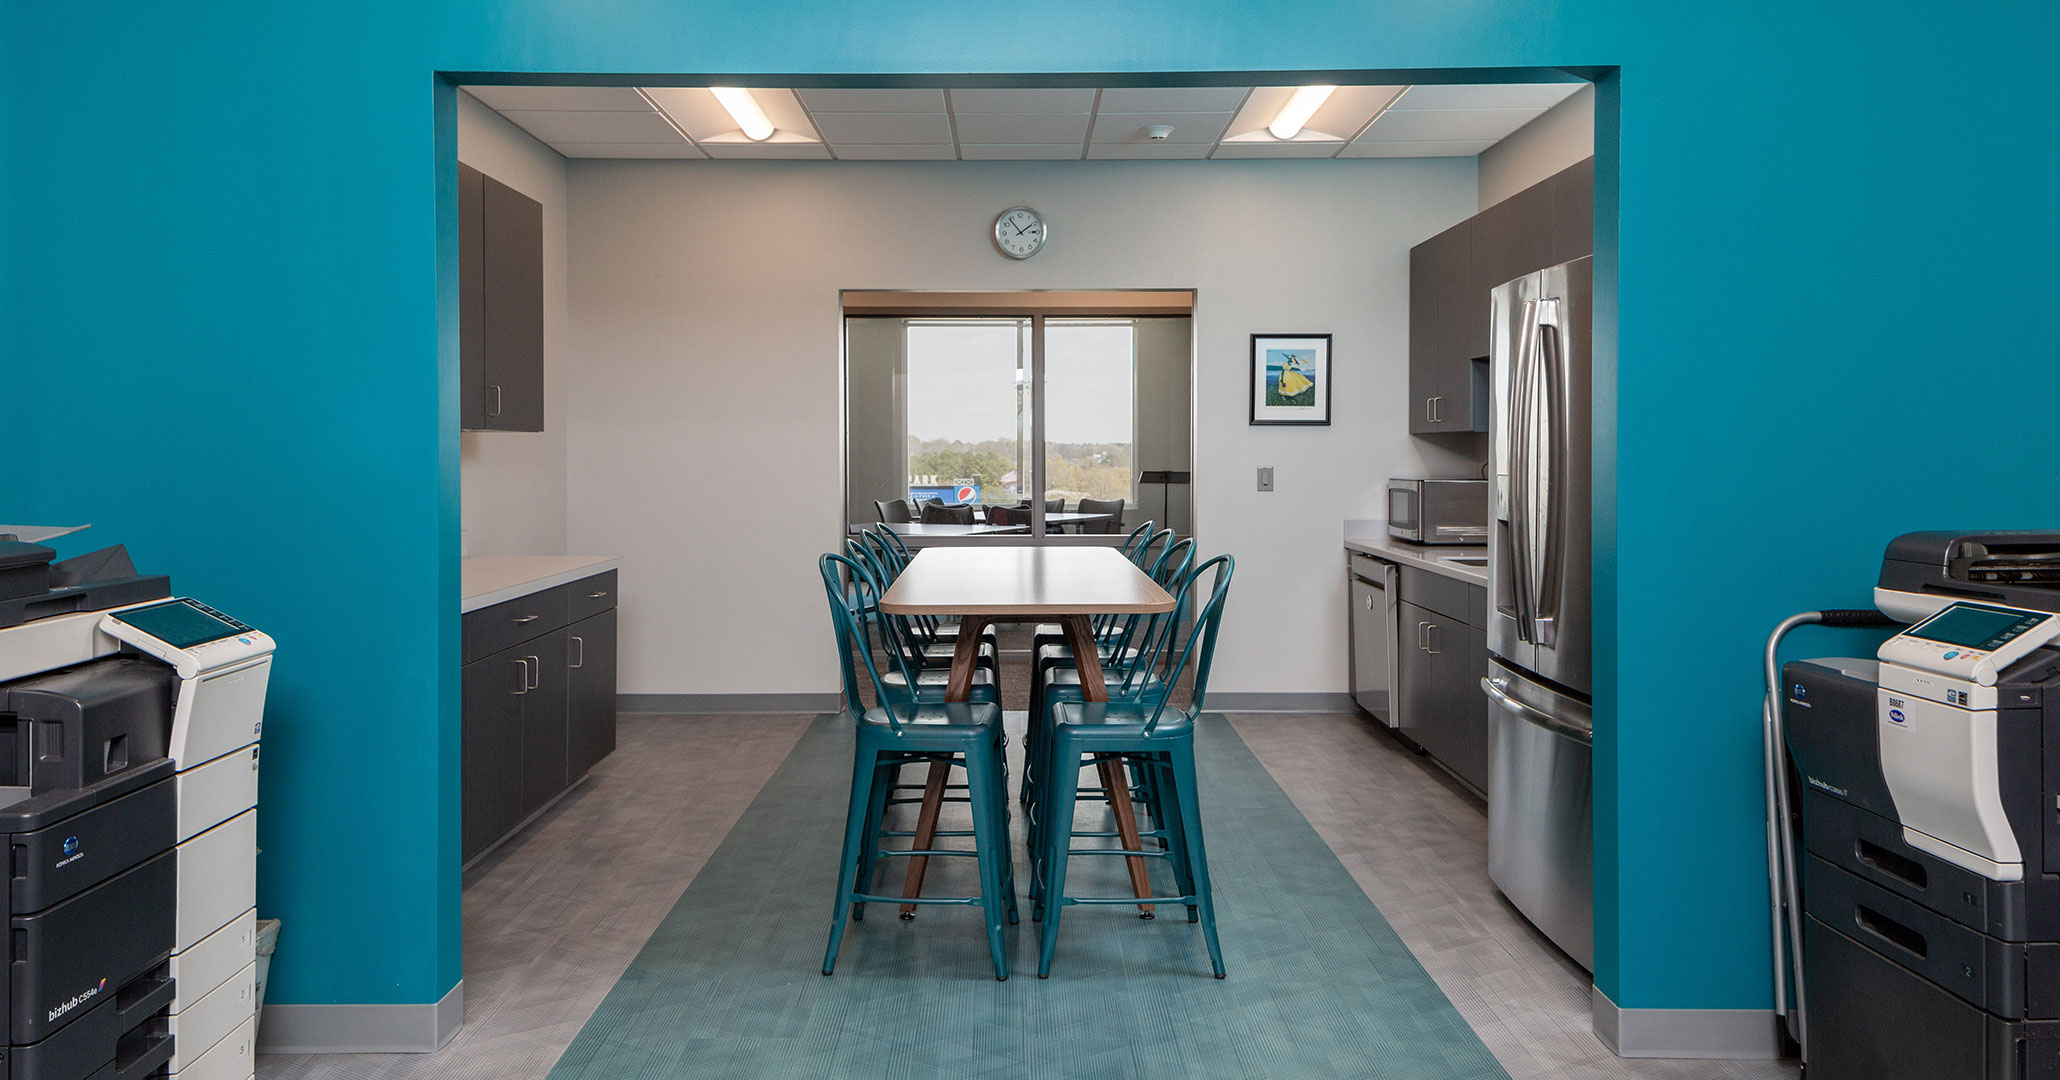 Boudreaux architects worked with the Central Carolina Community Foundation to provide interior design and programming services for their new office space including a modern kitchen and break room space.